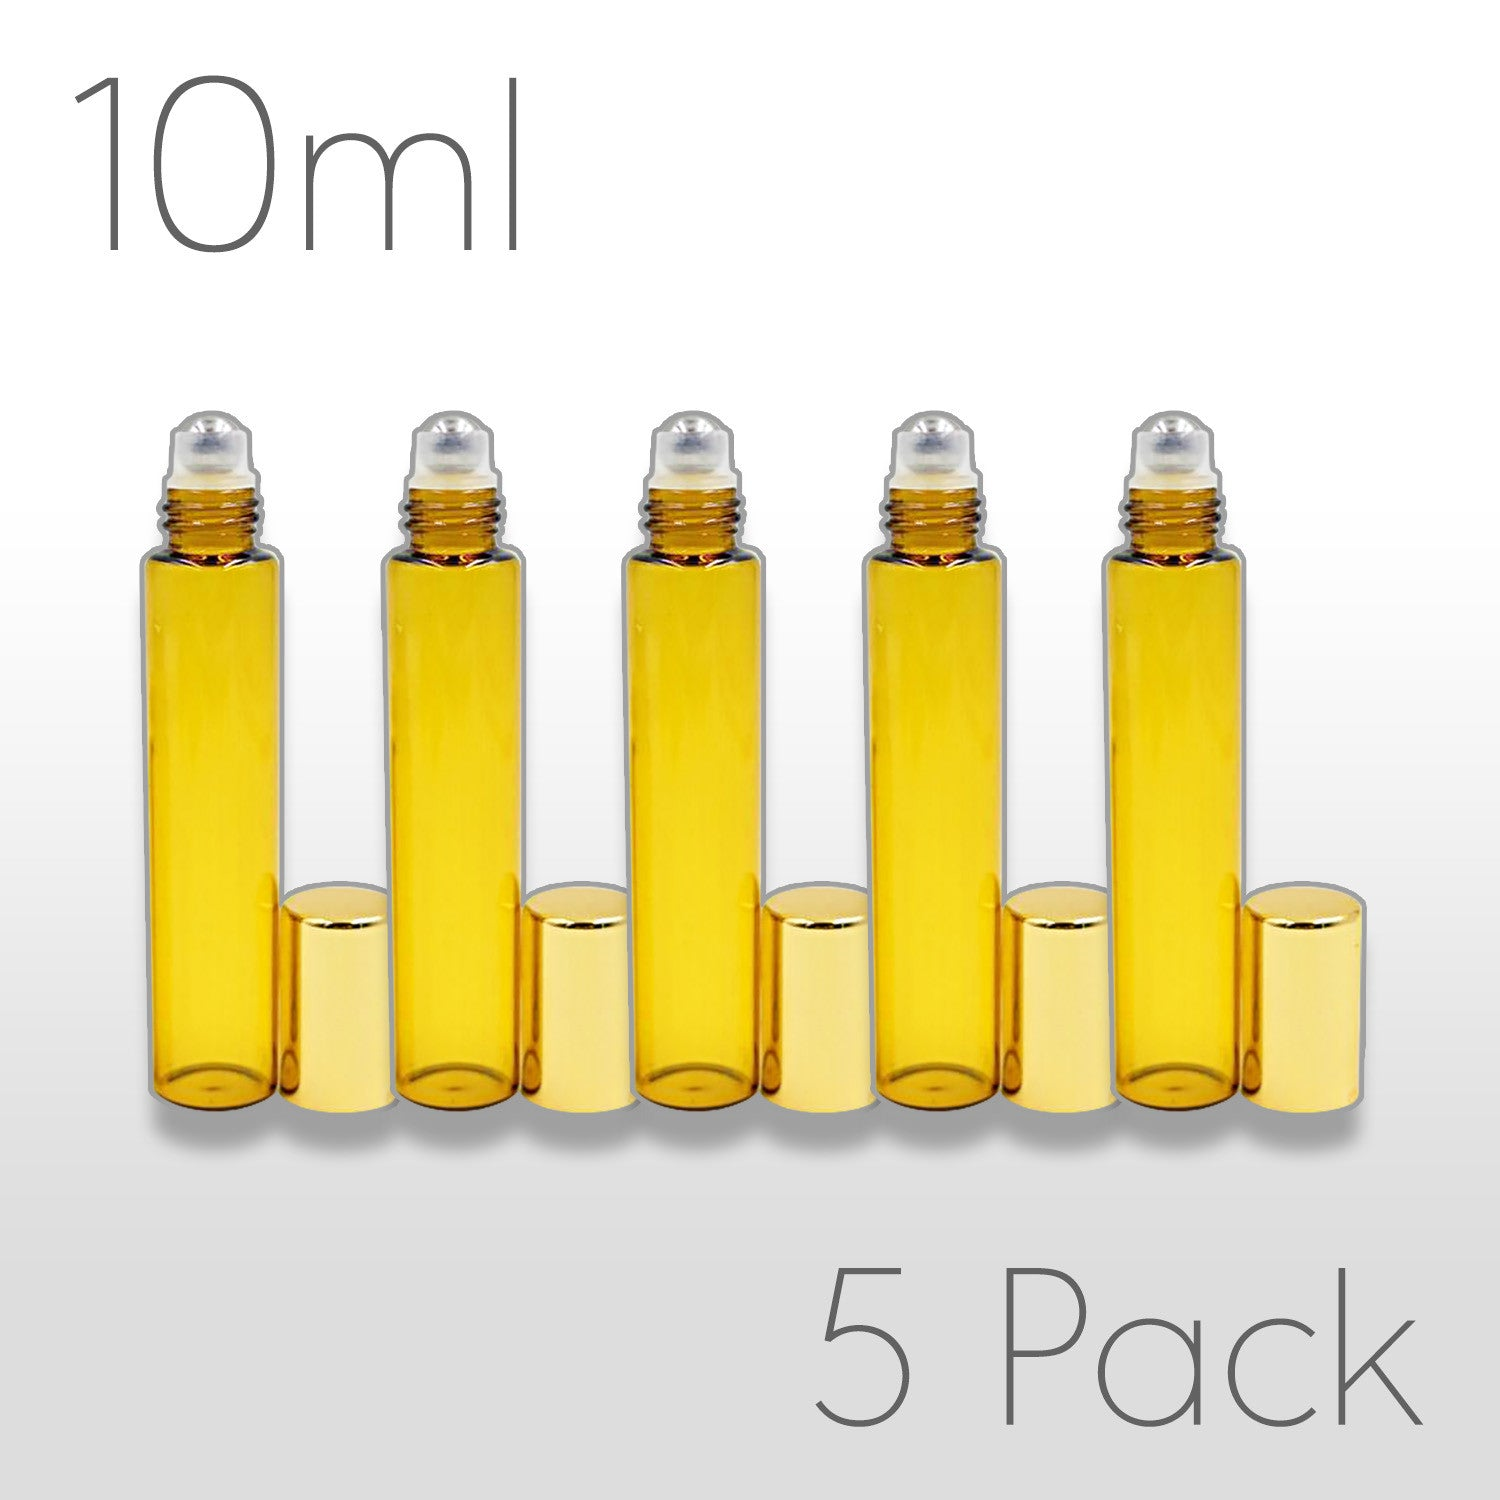 10 ml Amber Rollerballs with Steel Rollers - Set of 5